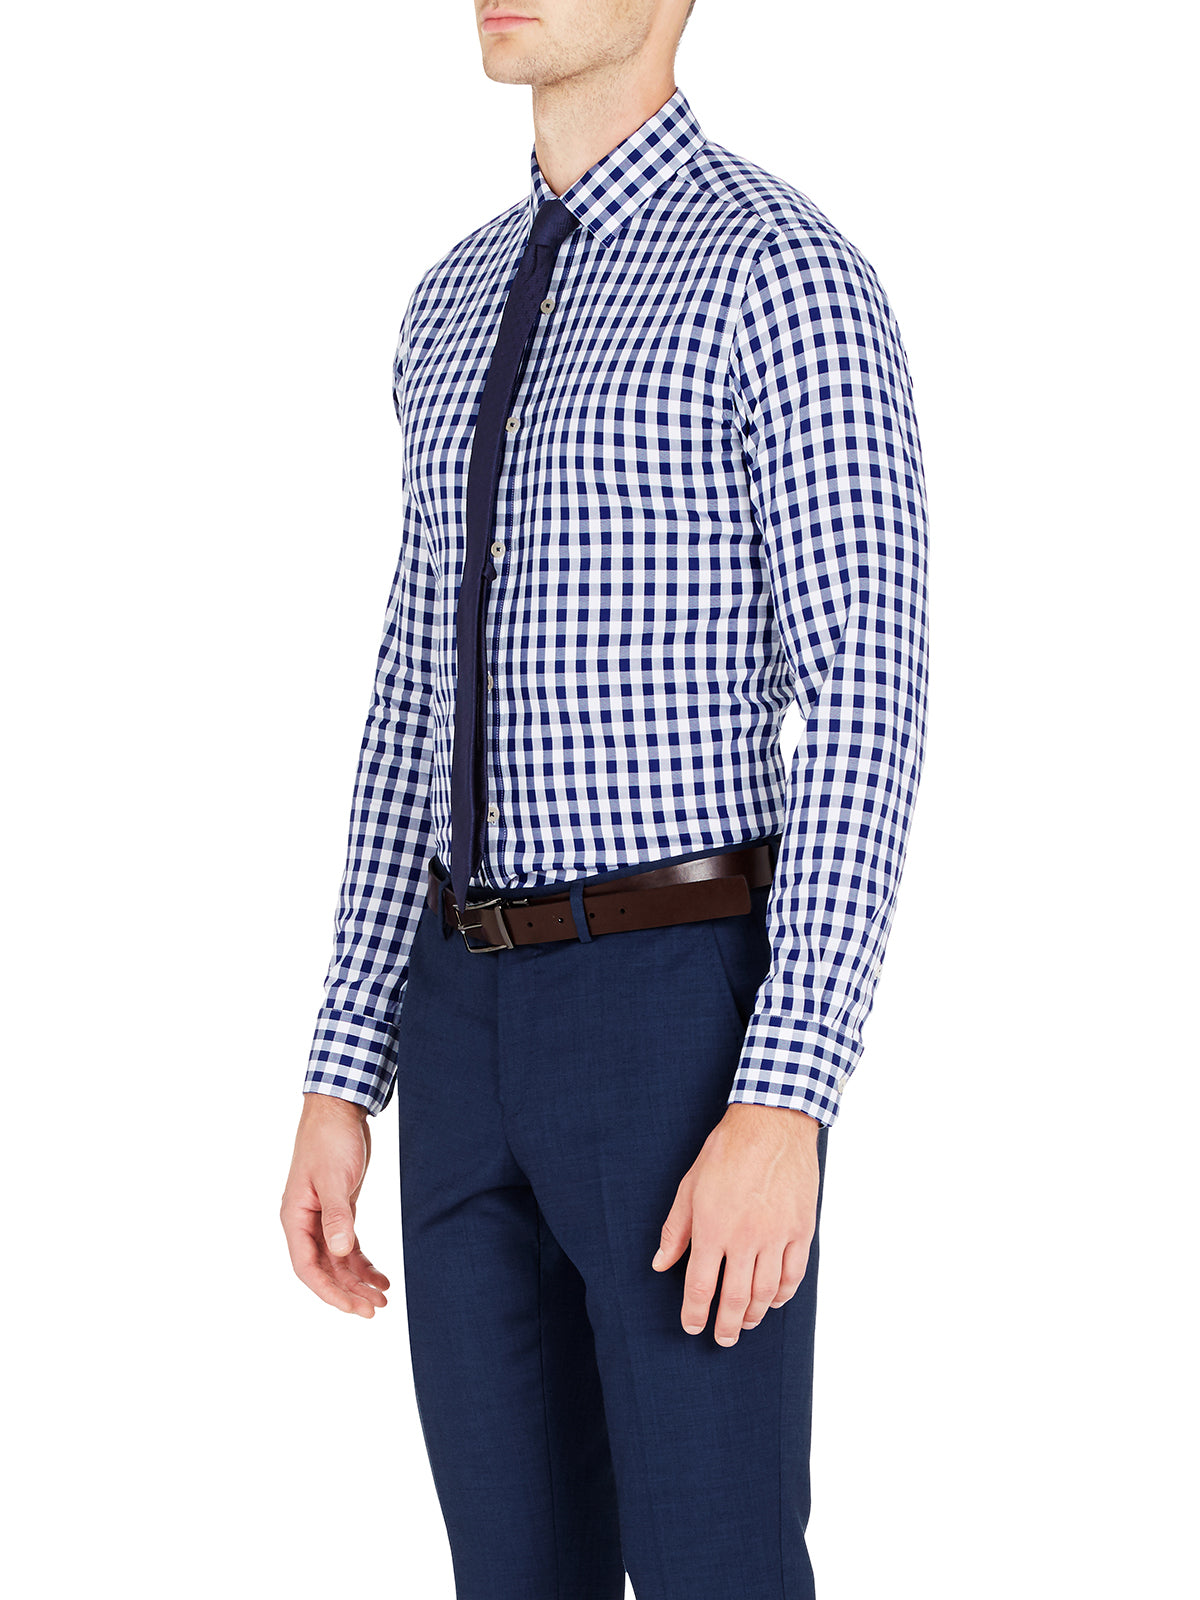 BECKTON GINGHAM CHECK SHIRT  SKY